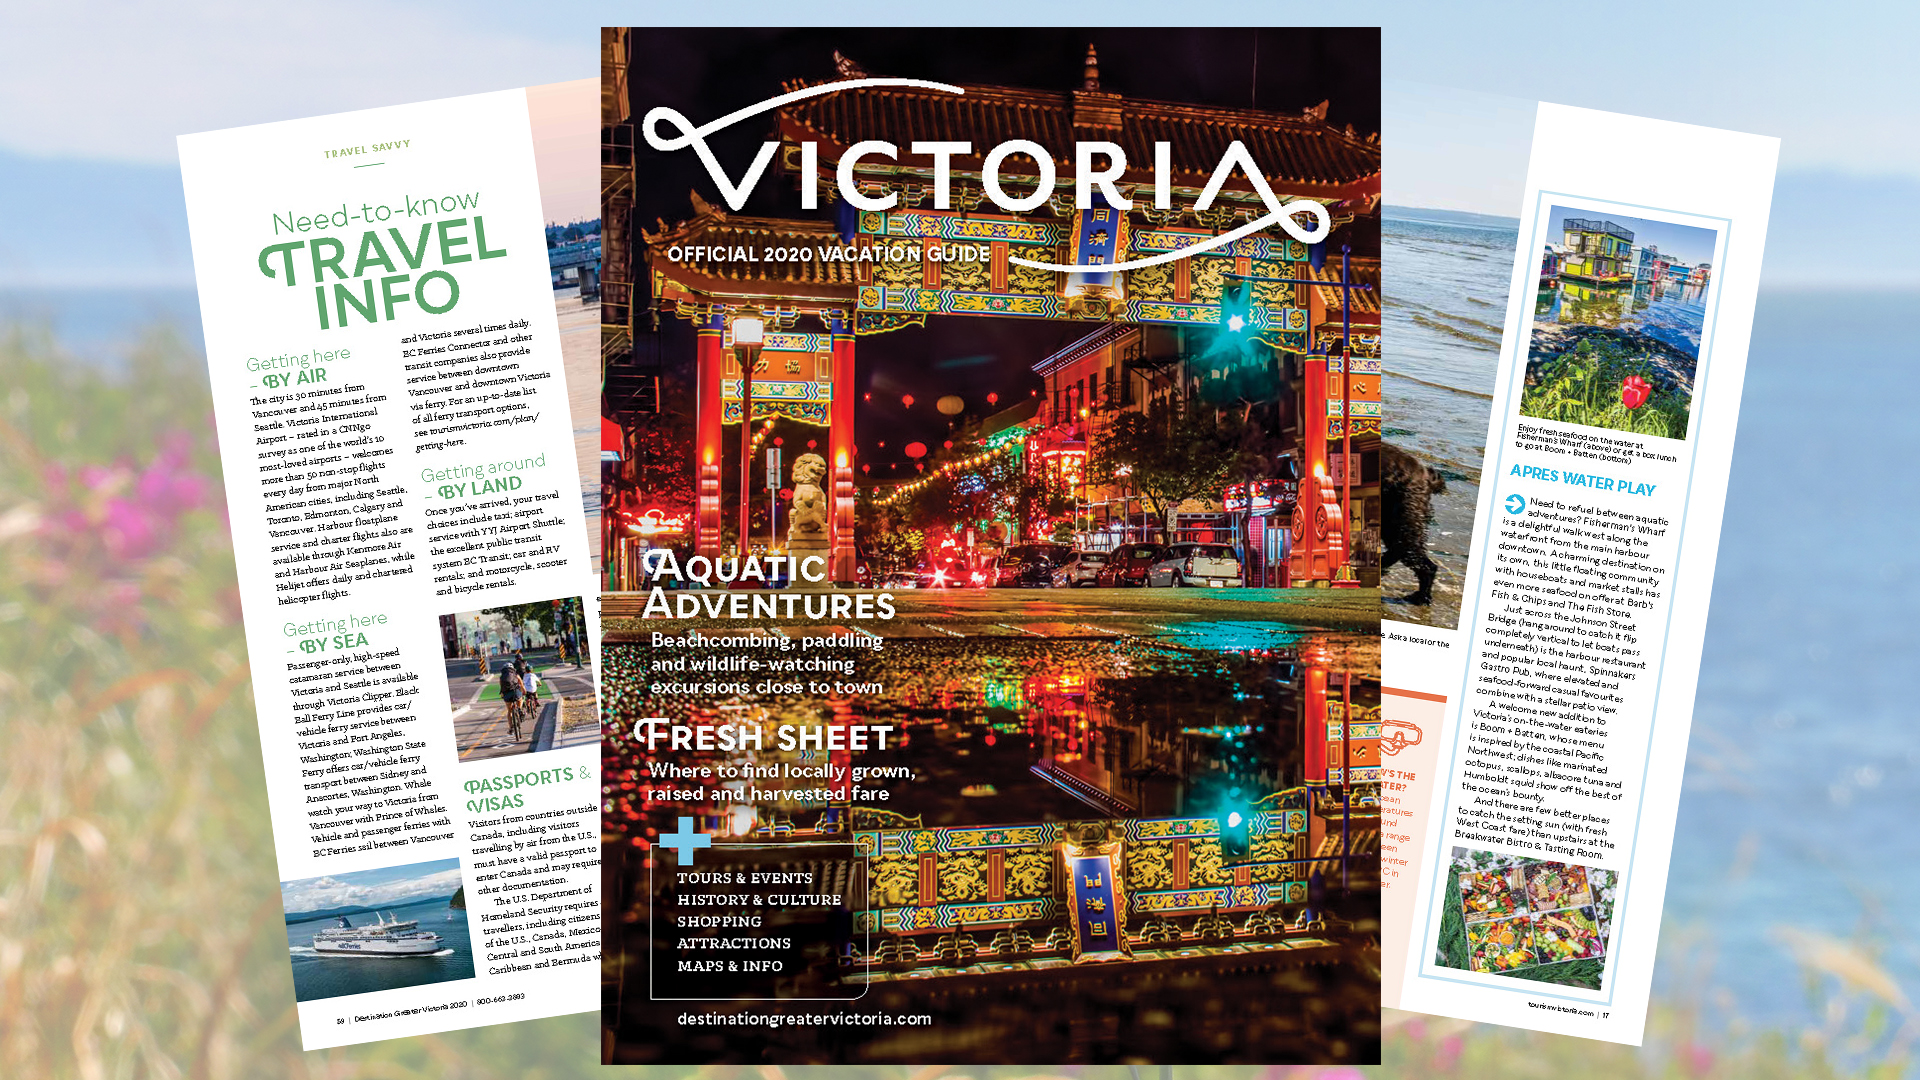 2020 Victoria Vacation Guide image